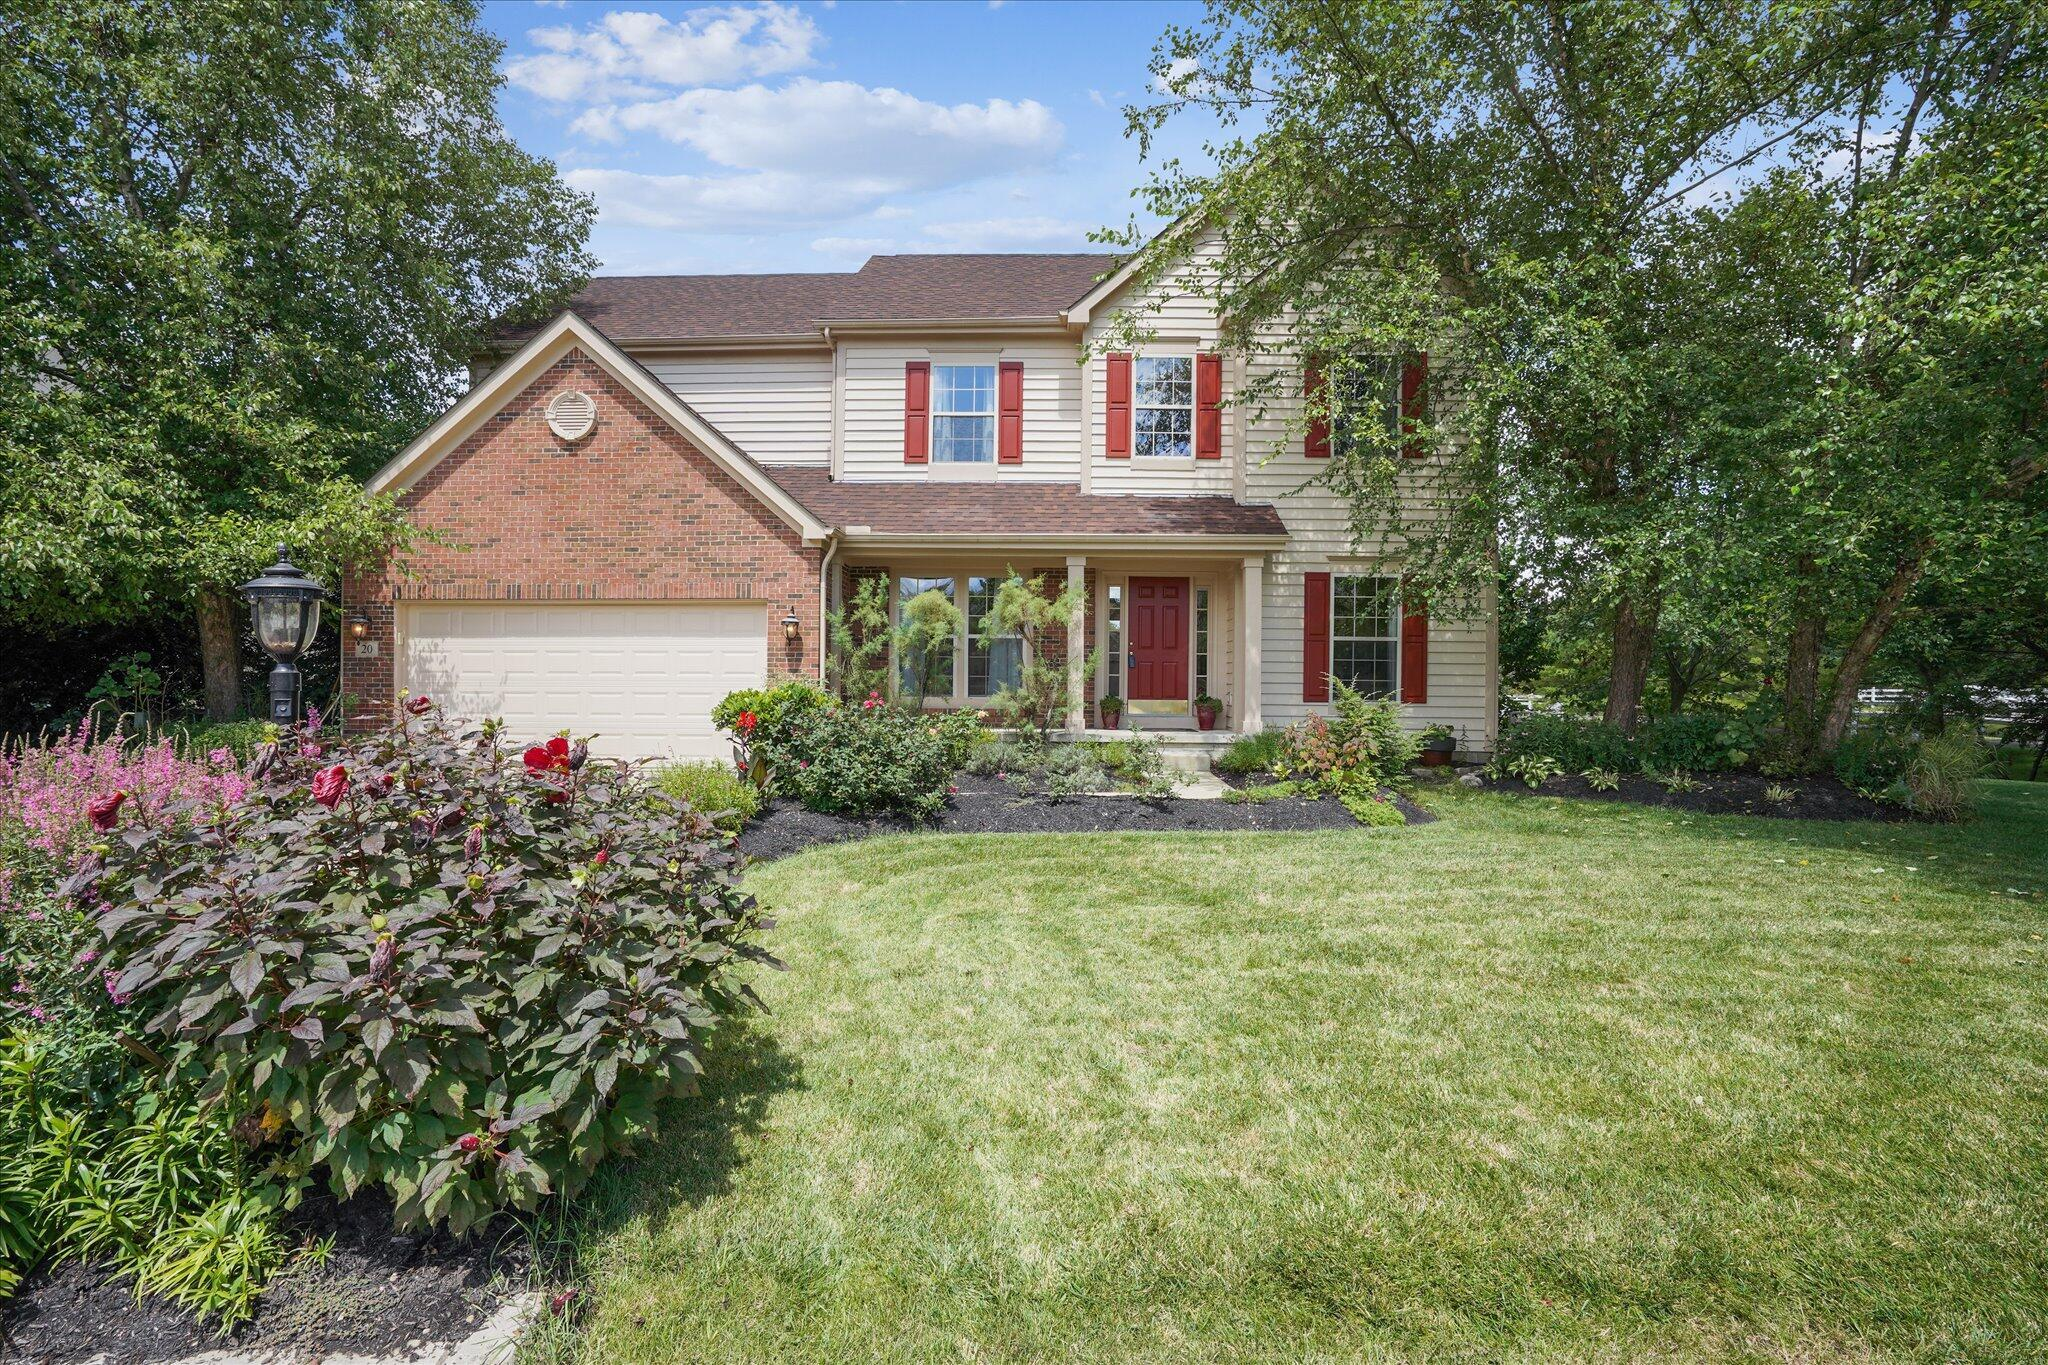 Located in Middlebury Estates, walking distance to downtown Powell restaurants & shops, near schools & down the road from the zoo, this meticulously maintained one owner, 4 BR home built by Bob Webb is one you'll want to see! 2 story family room w/ gas fireplace, windows overlooking pond offering tons of natural light & making you feel like you're on vacation 24/7. White cabinets, granite countertops, center island & stainless steel appliances in kitchen w/ eating space & door to back patio. 1st floor den/office space convenient for working from home. 4 bedrooms upstairs including master w/ vaulted ceilings, walk-in closet & updated shower. New Roof 2017, Furnace 2020, & Sump Pump 2020. 1st floor laundry, irrigation system, surround sound, finished basement & attached 2-car garage. WOW!